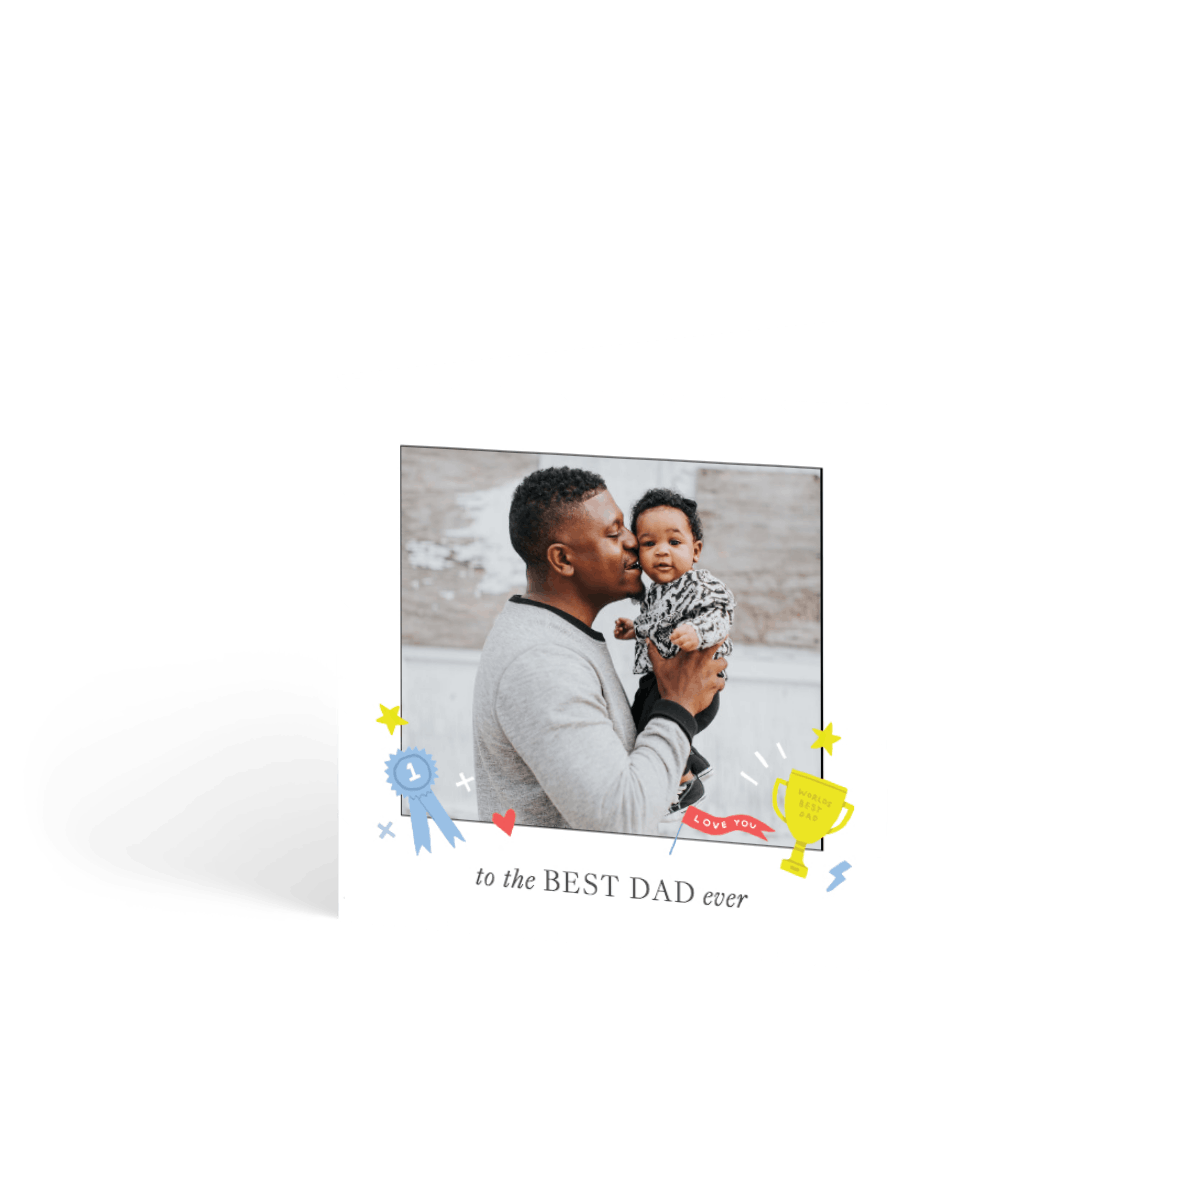 Https%3a%2f%2fwww.papier.com%2fproduct image%2f74287%2f16%2fbest dad ever award 17451 front 1581455177.png?ixlib=rb 1.1